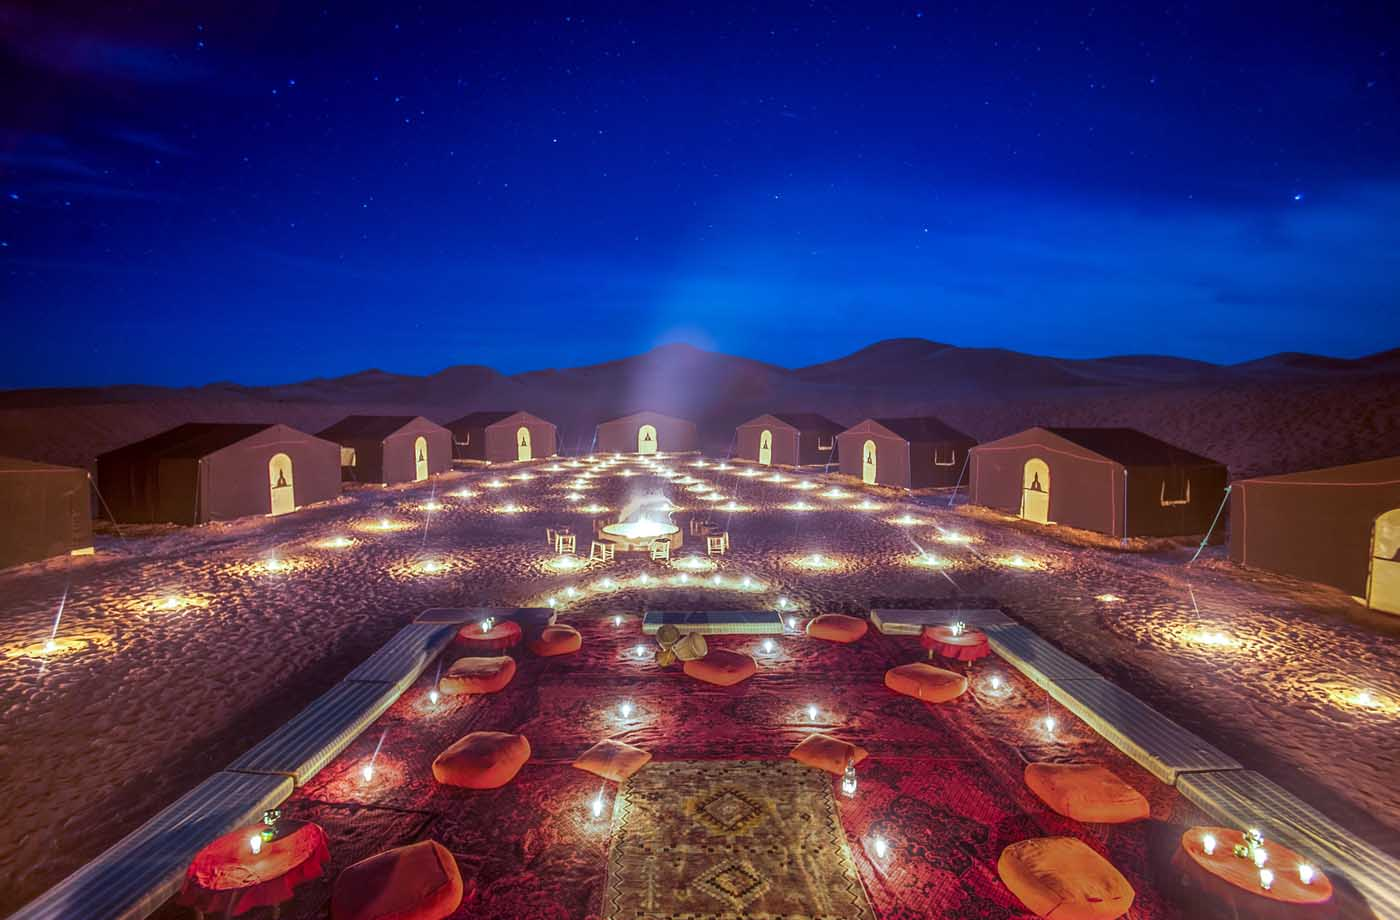 Night campt at Morocco desert Tours